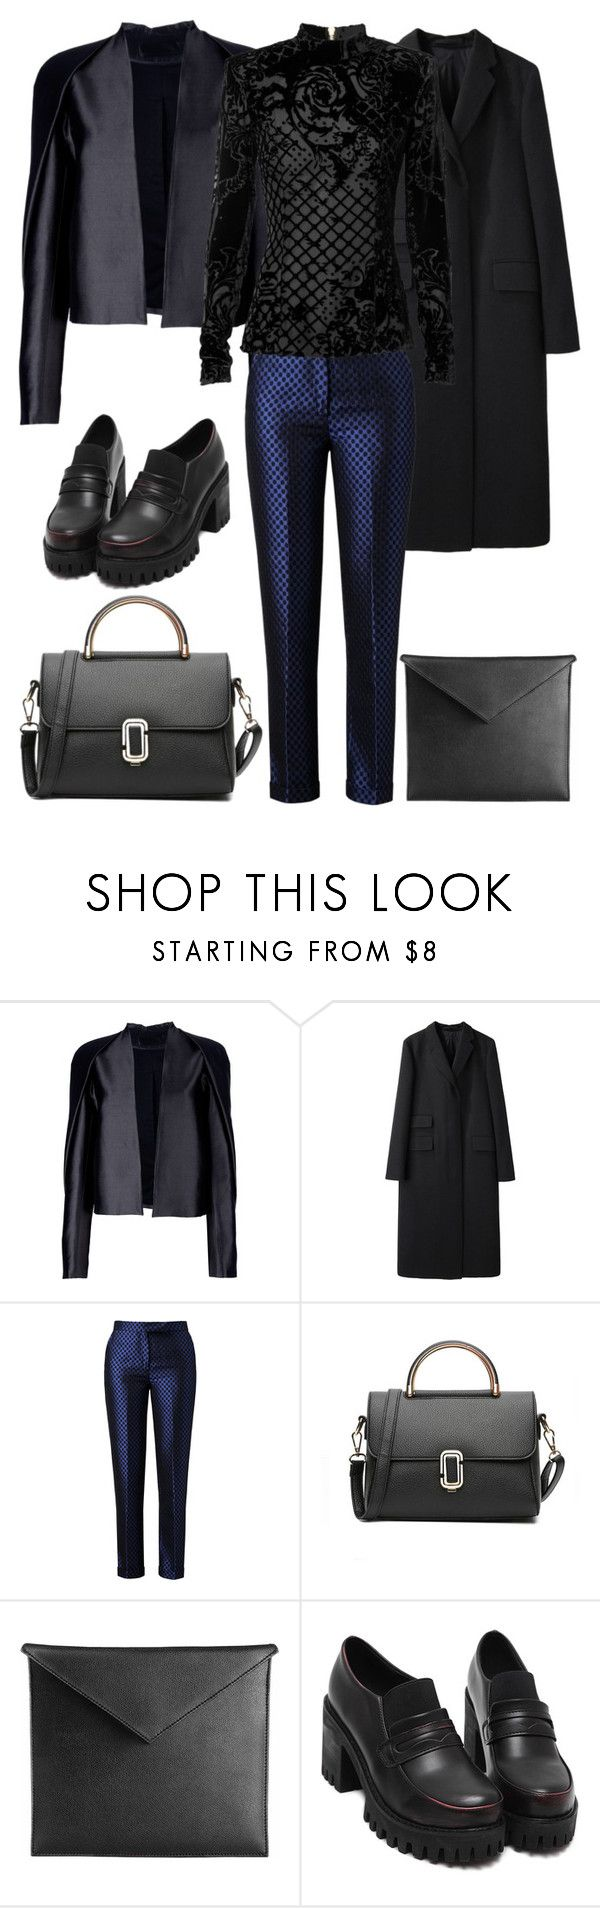 """""""2018"""" by skyl19 ❤ liked on Polyvore featuring Haider Ackermann, Margaret Howell, Osman Yousefzada and Mark/Giusti"""